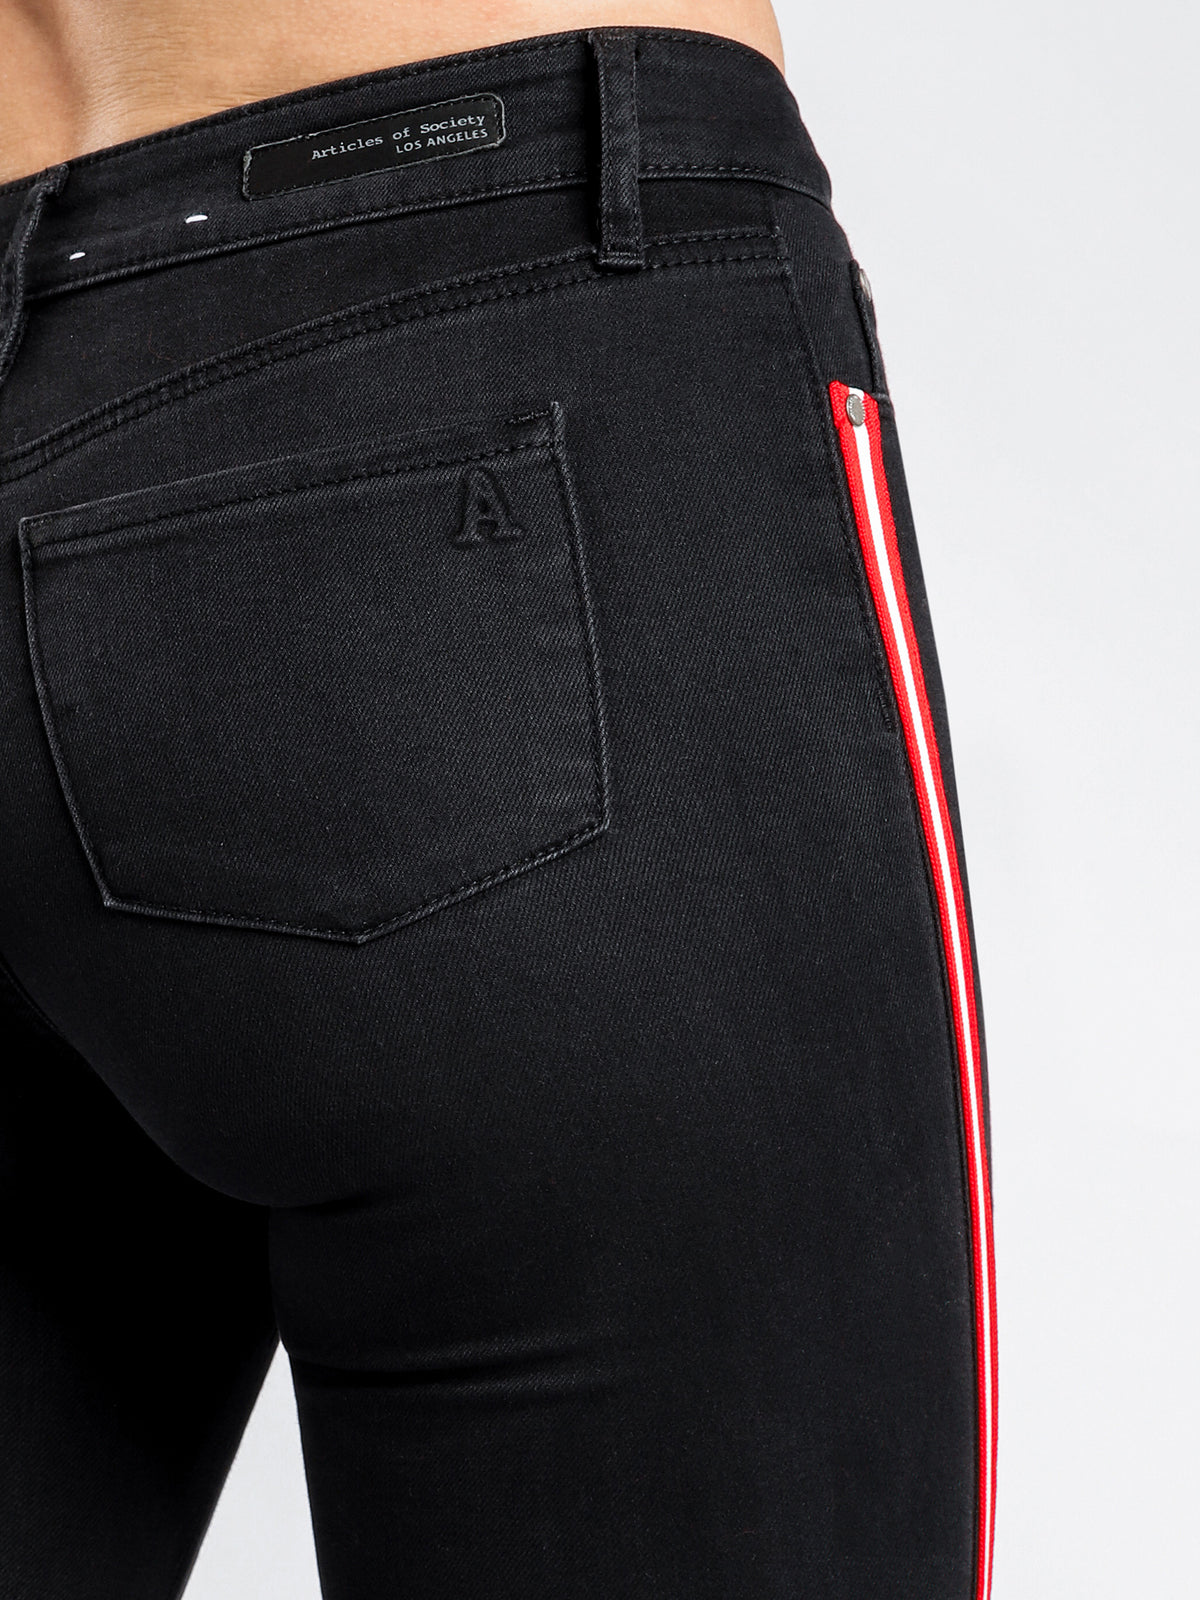 High Cisco Super Skinny Jeans in Black Out Denim